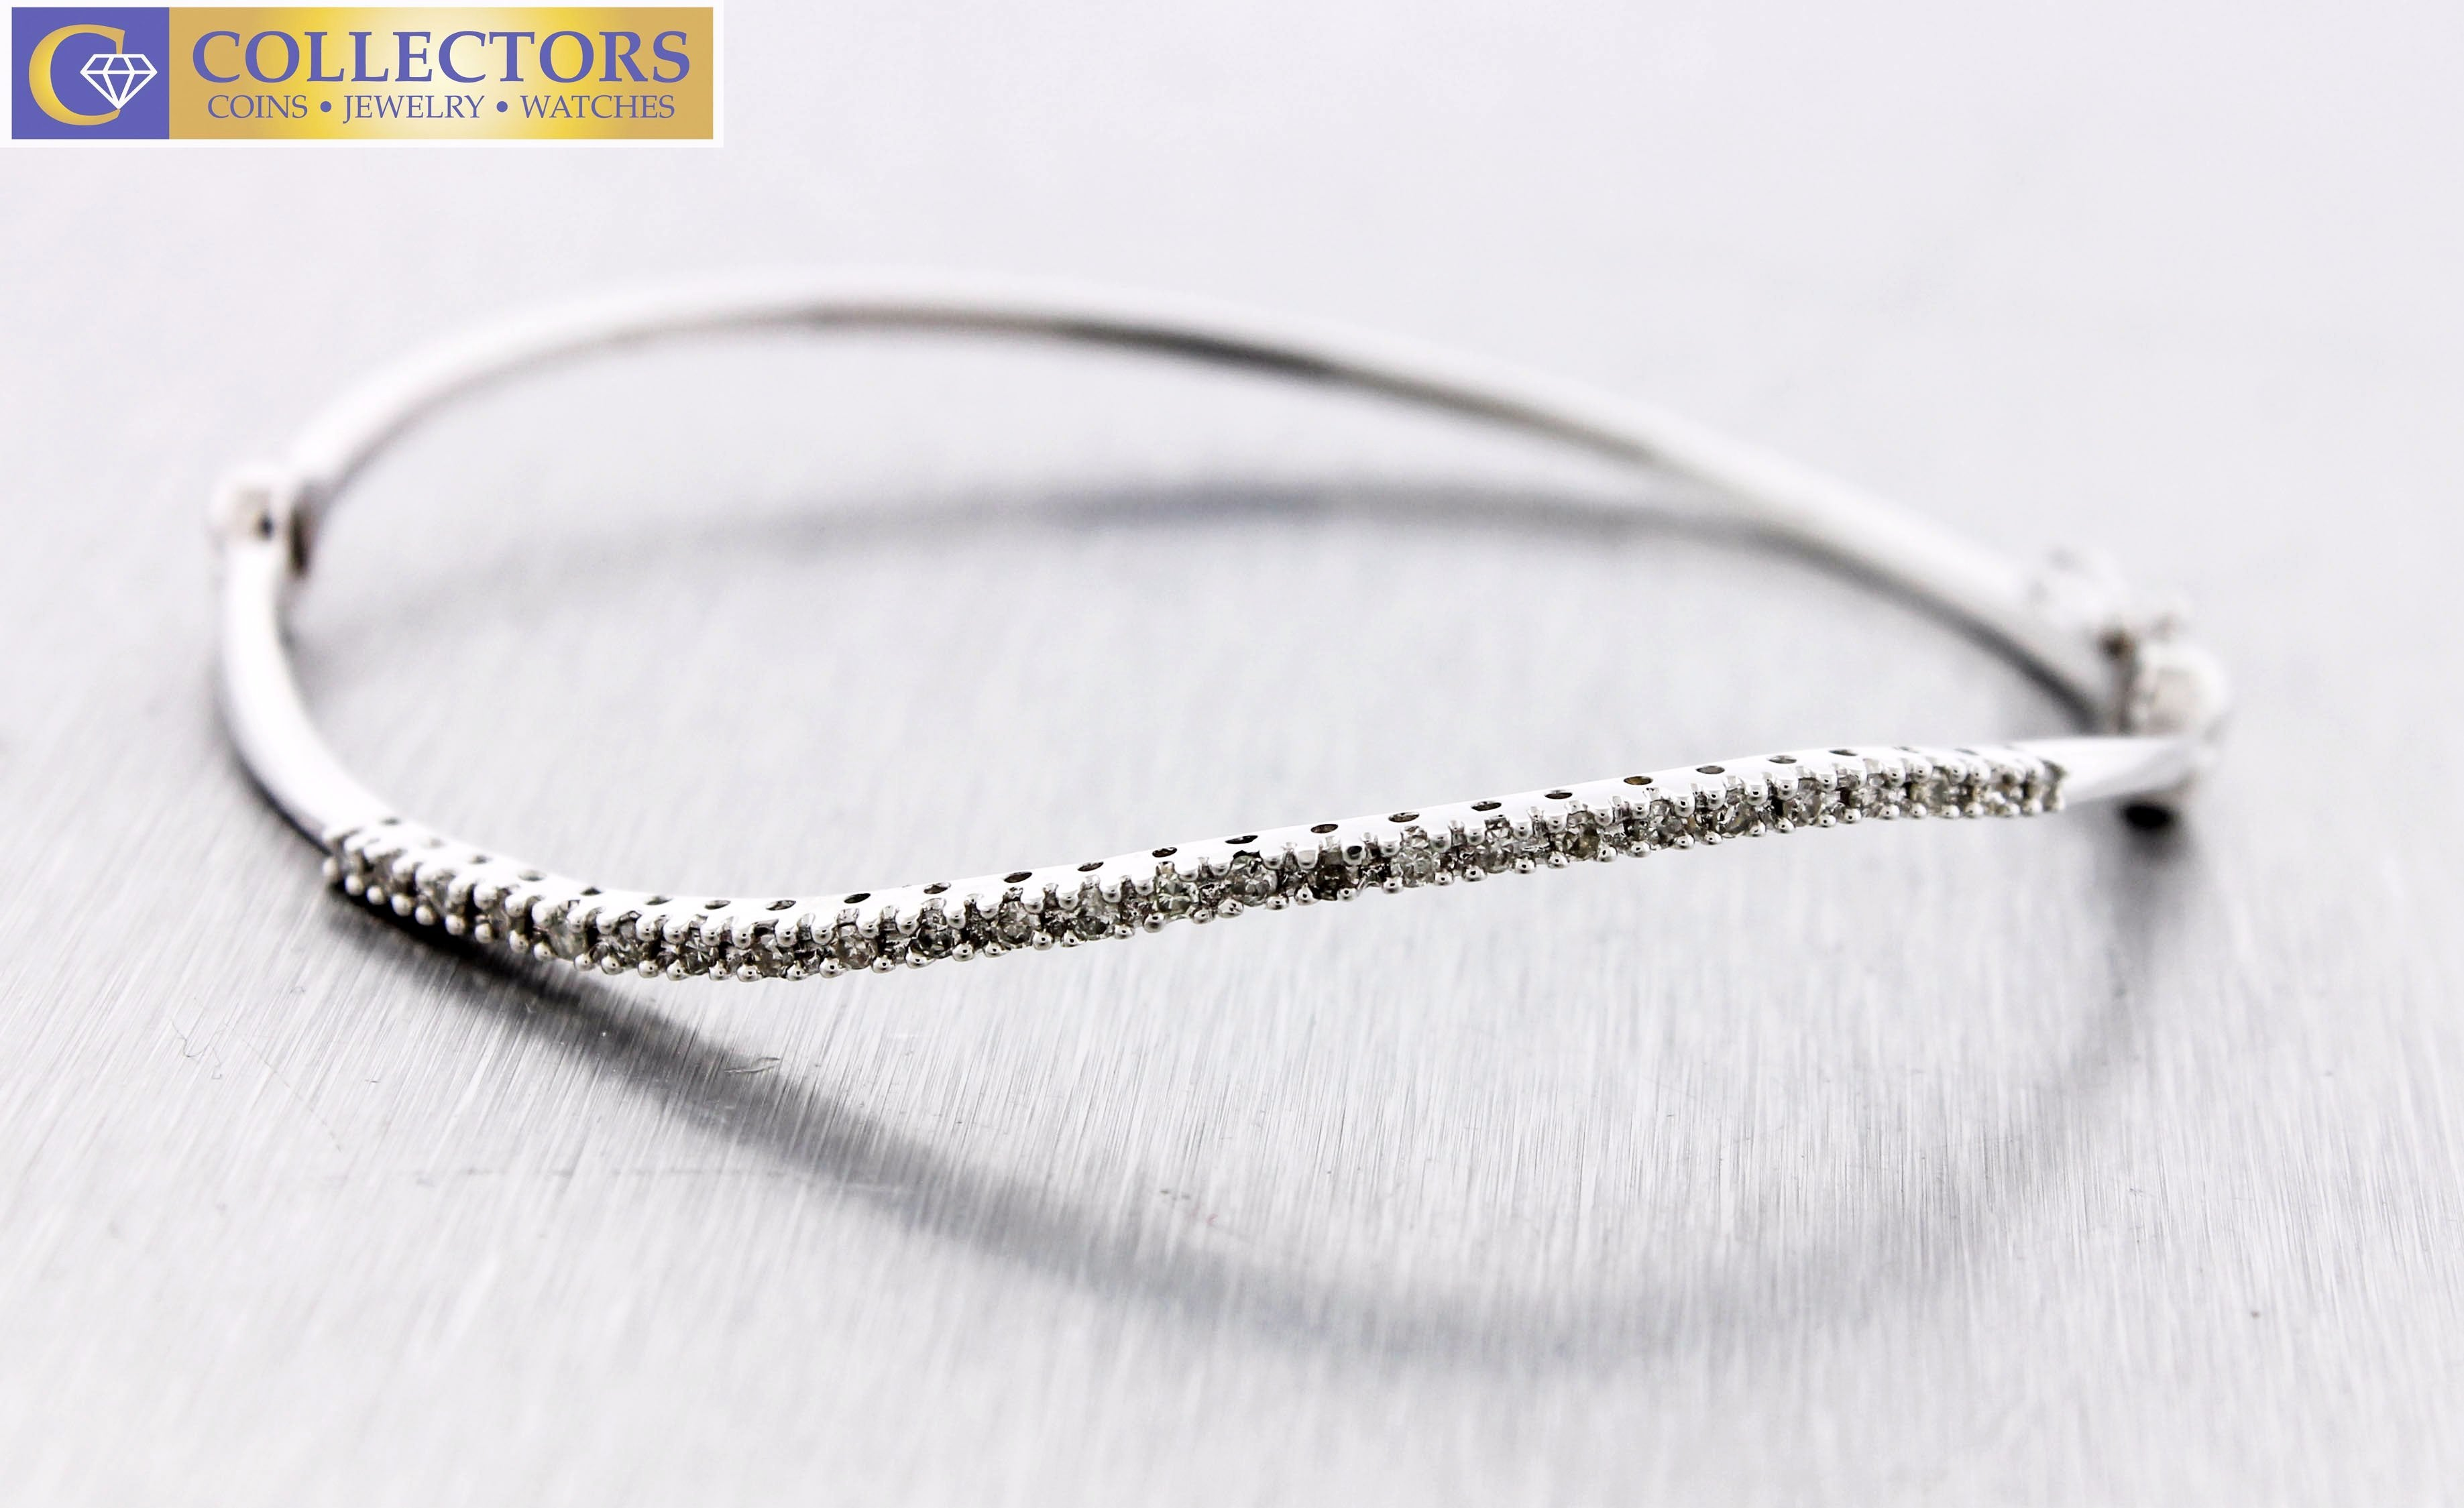 Lovely Ladies Estate 14K White Gold 0.25ctw Pave Diamond Bangle Bracelet